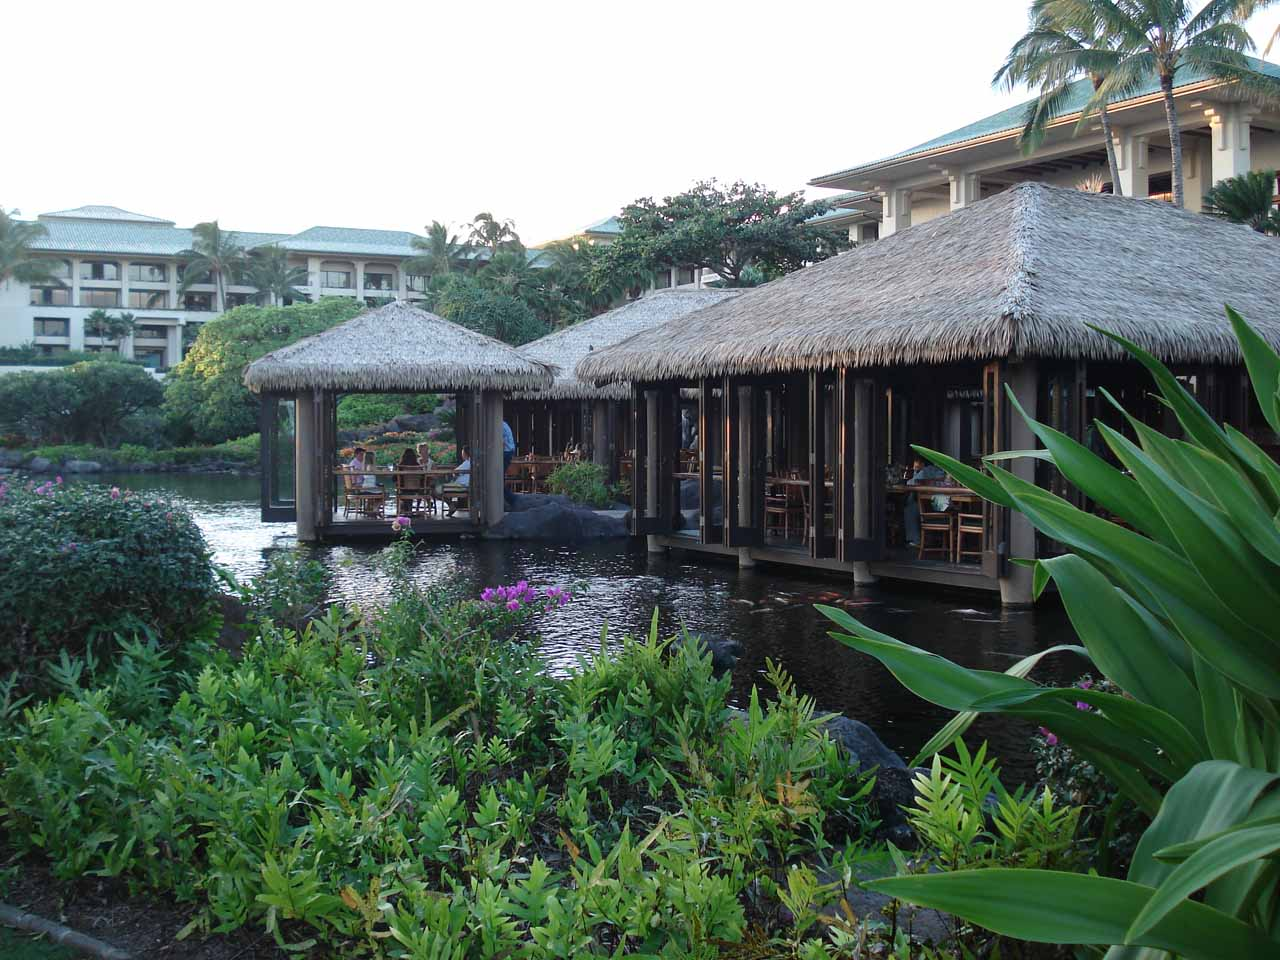 It really seemed like the resorts of Po'ipu were where visitors on a looser budget could stay